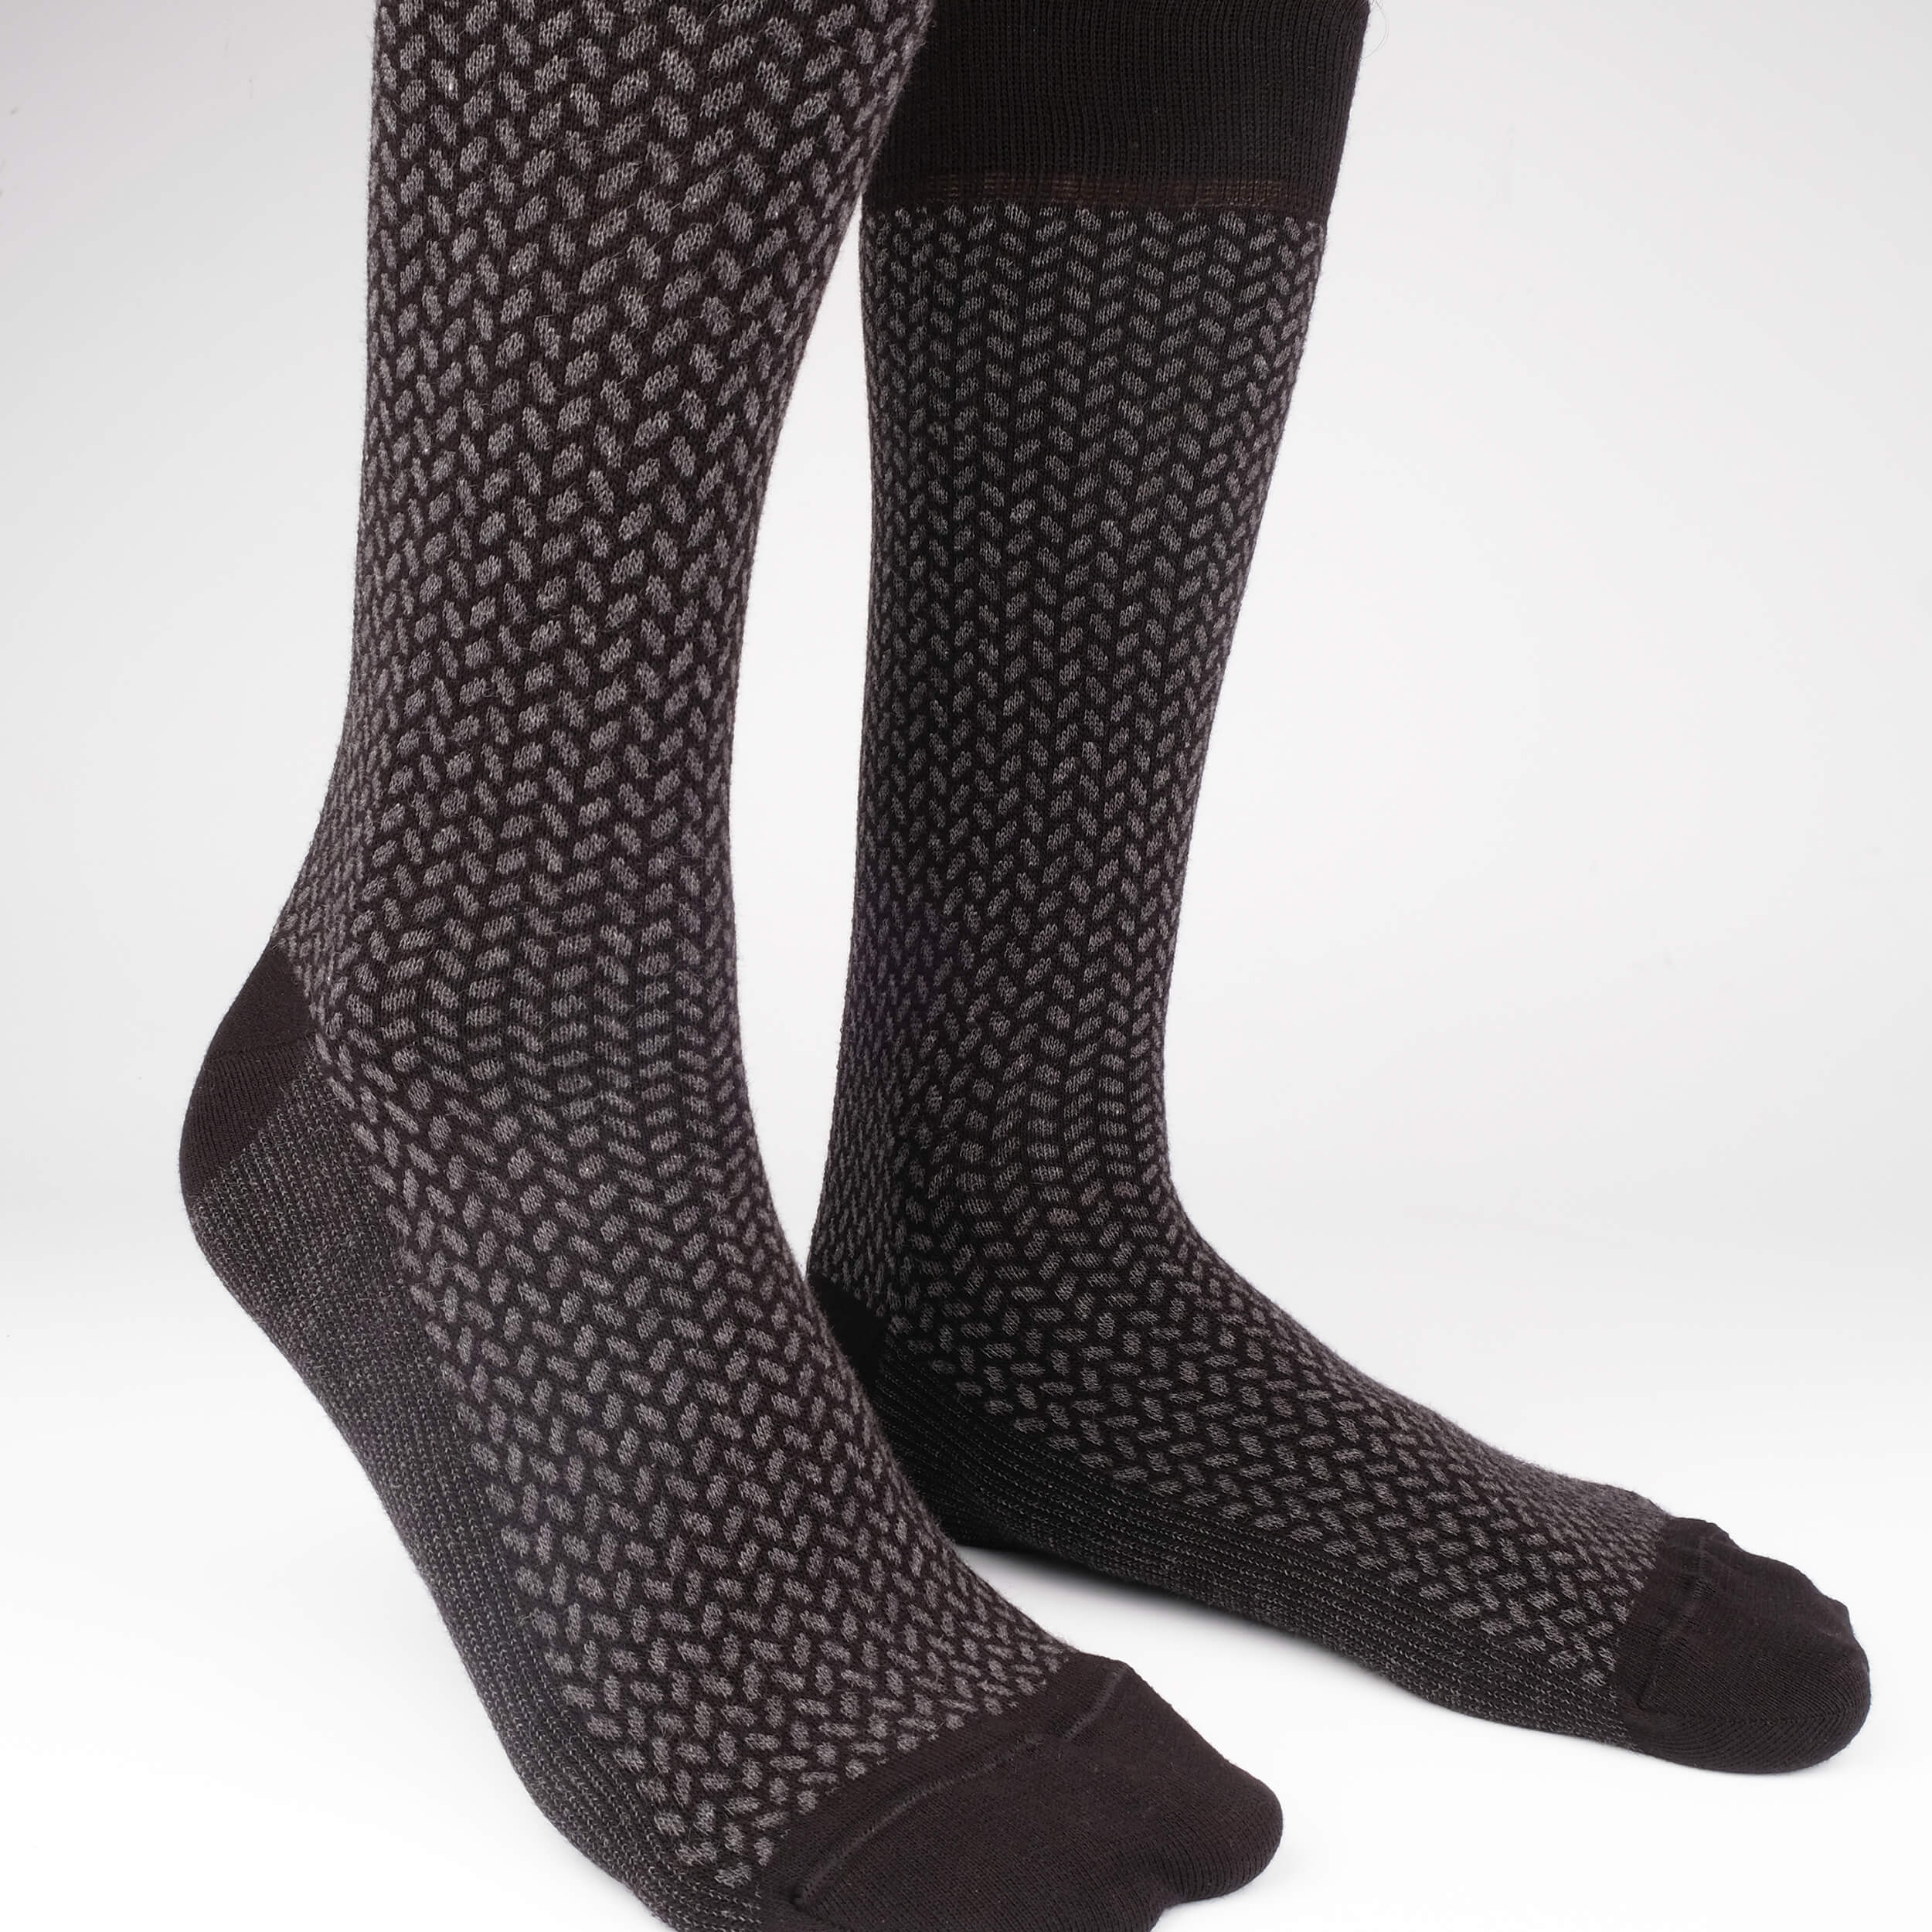 Mens Socks - Herringbone Blocks Men's Socks - Black⎪Etiquette Clothiers